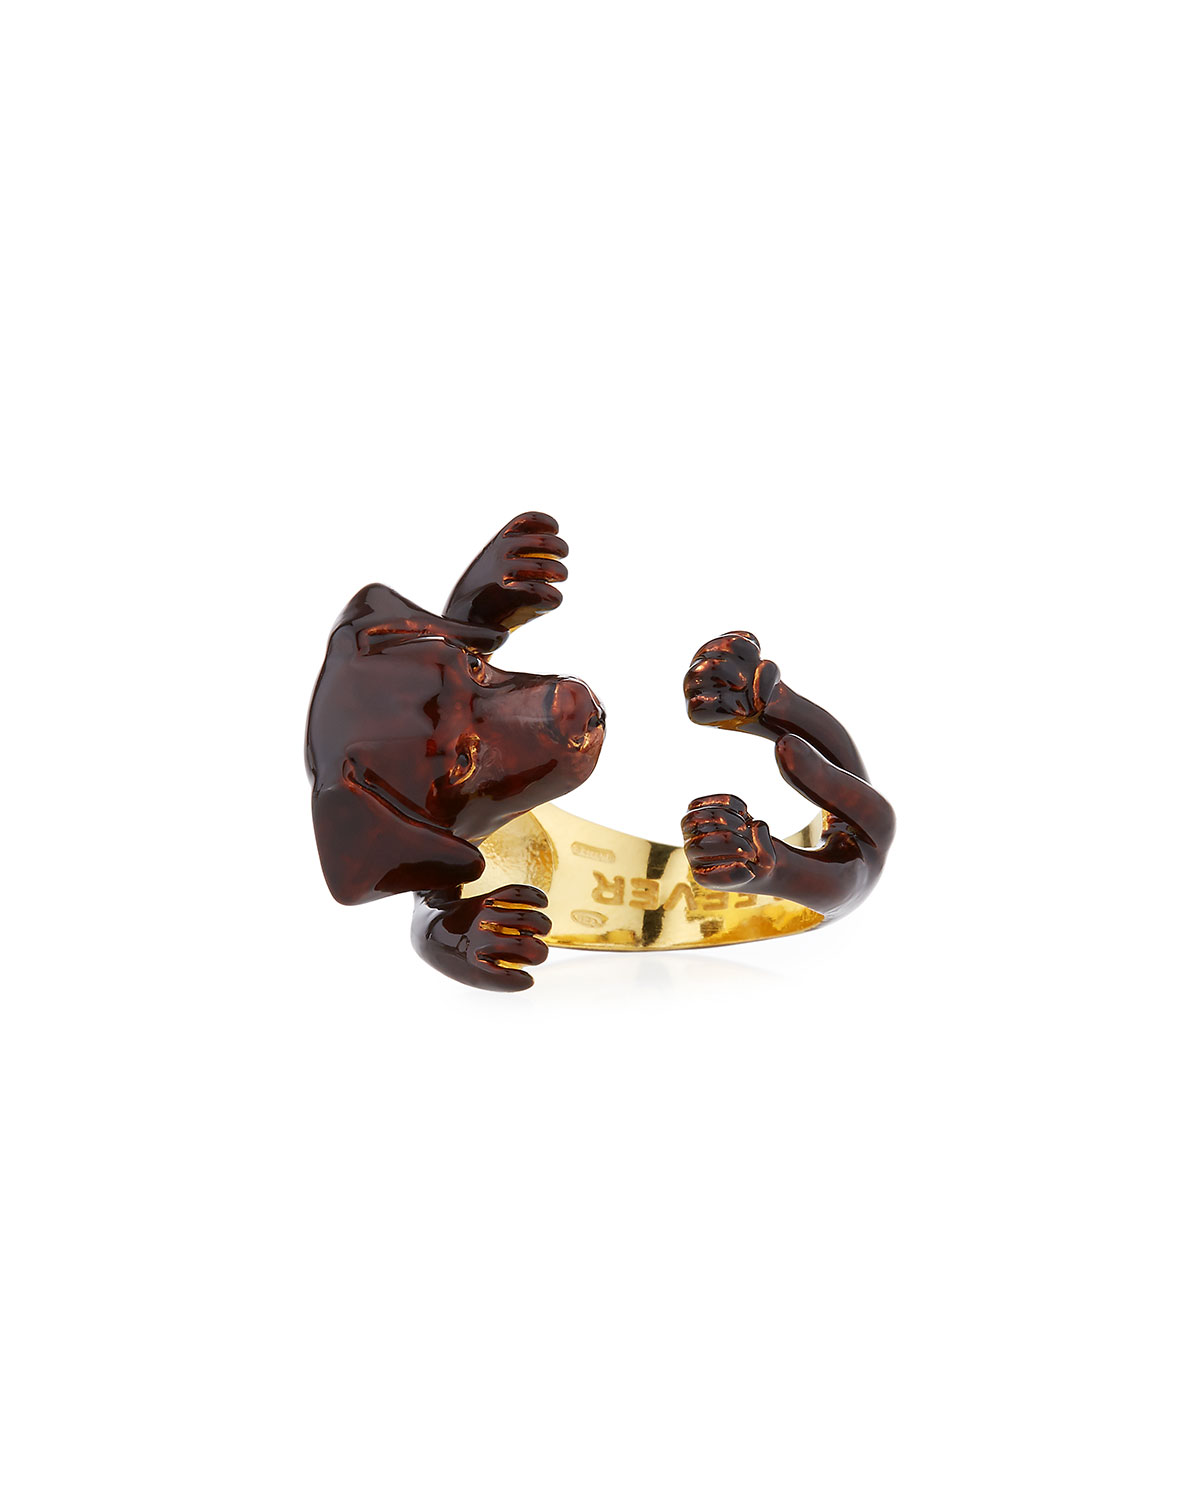 VISCONTI & DU REAU CHOCOLATE LAB PLATED ENAMEL DOG HUG RING, SIZE 7